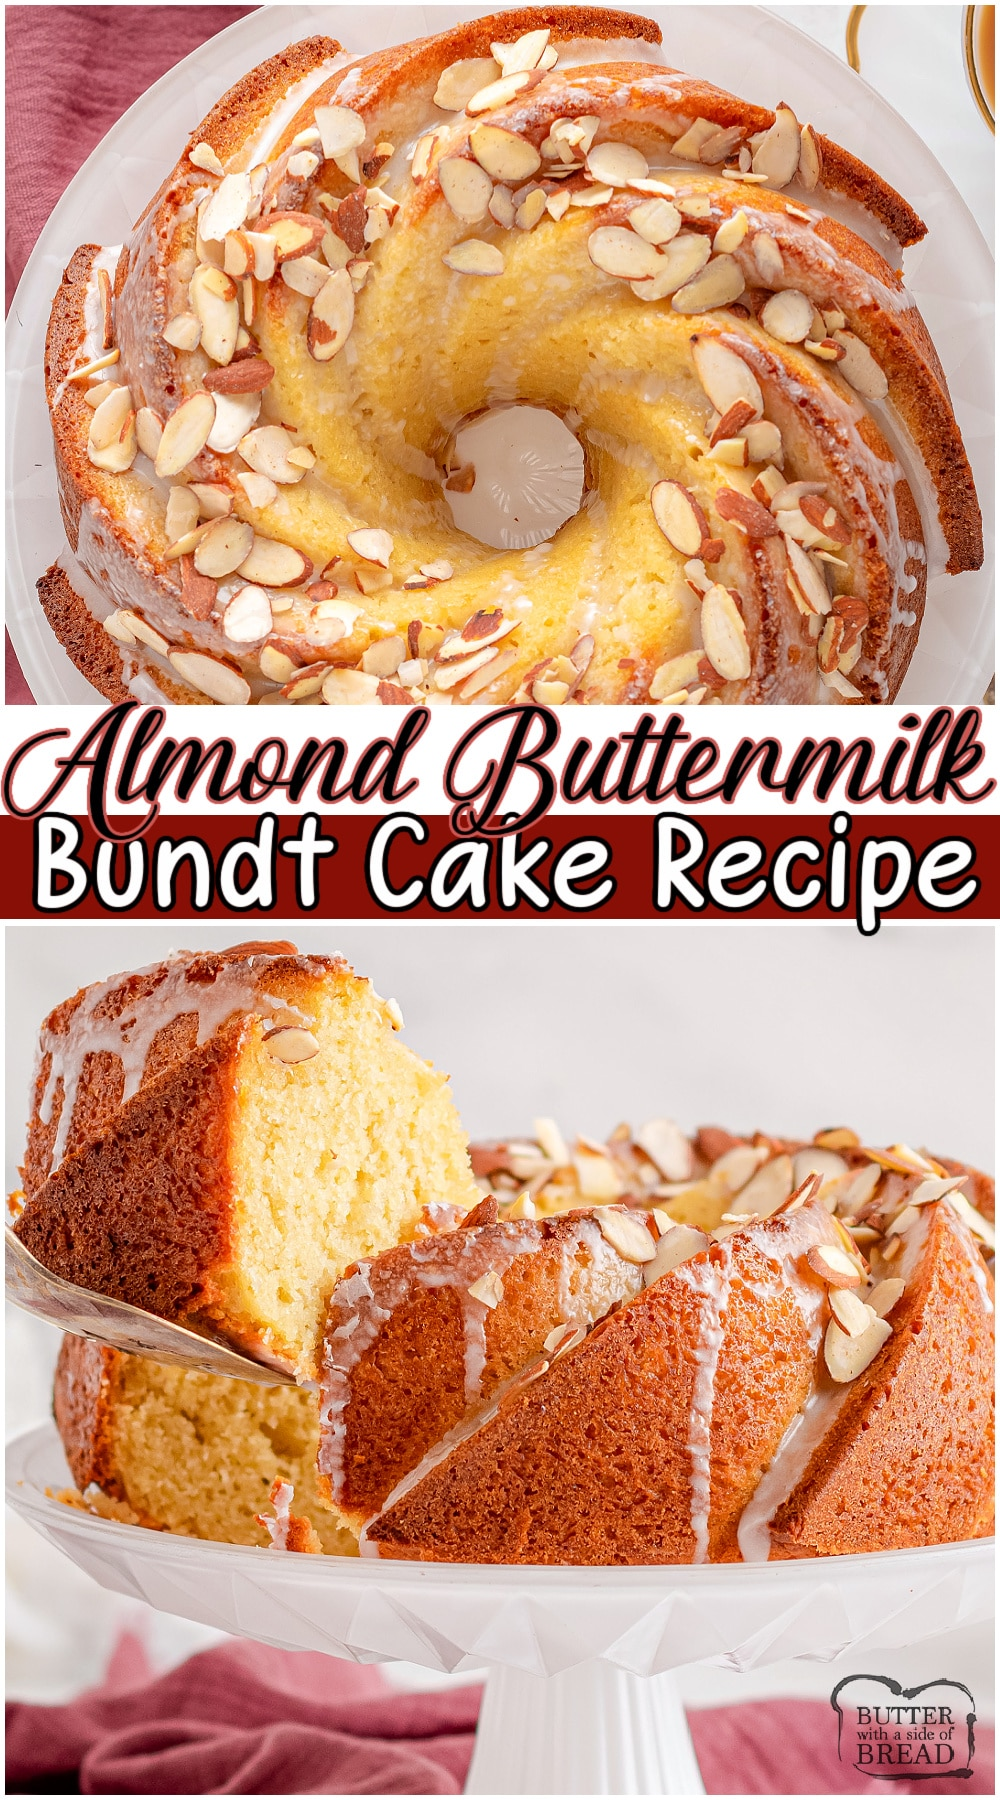 Almond bundt cake made with classic ingredients and then topped with a smooth almond glaze and crunchy almond slices. Gorgeous bundt cake that's simple to make & tastes delicious! #cake #bundt #almond #baking #dessert #easyrecipe from BUTTER WITH A SIDE OF BREAD